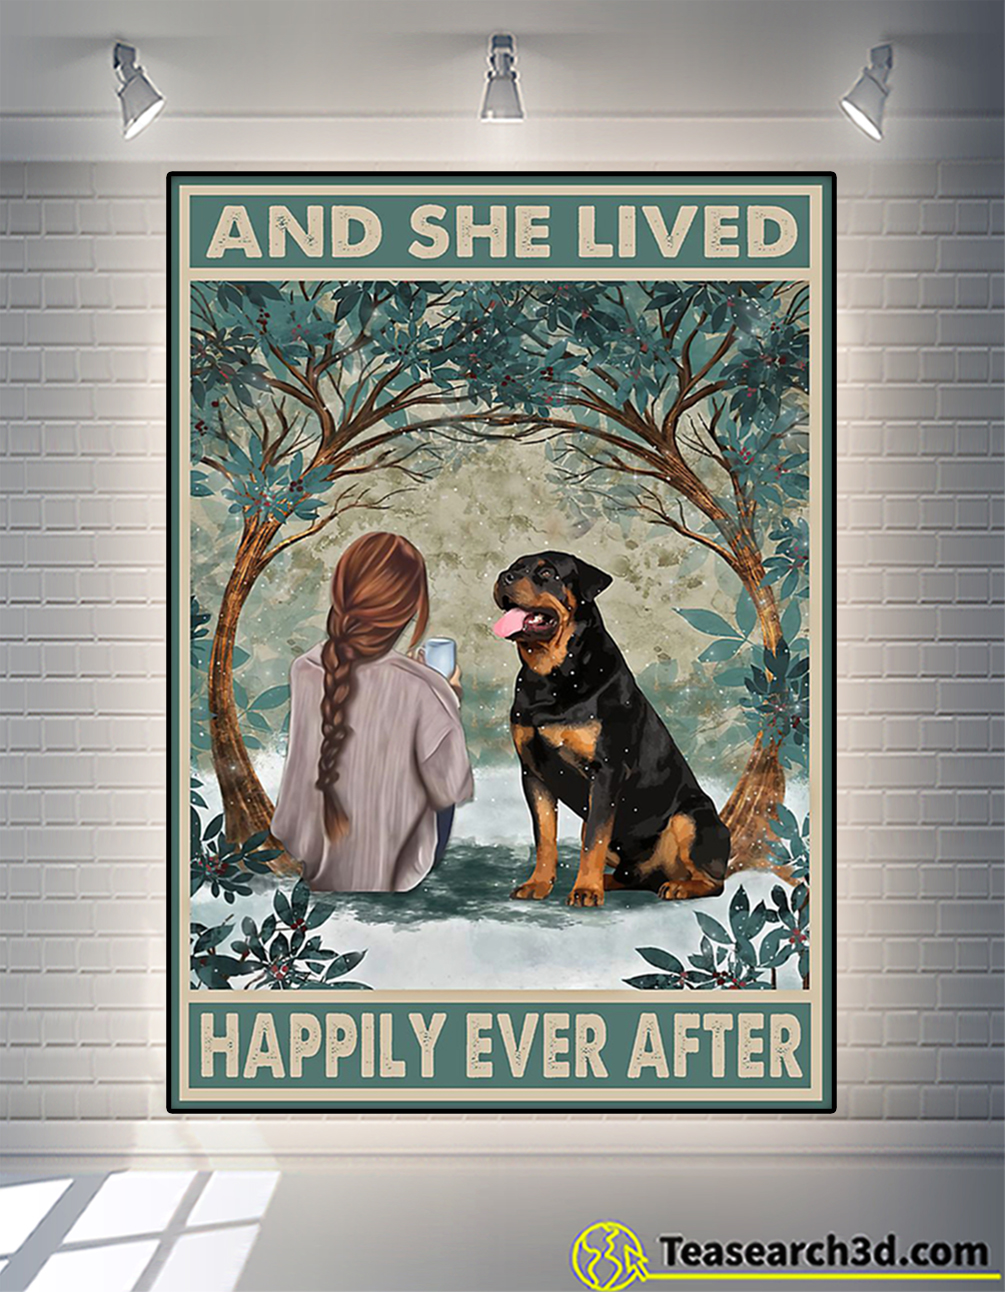 Rottweiler and she lived happily ever after poster